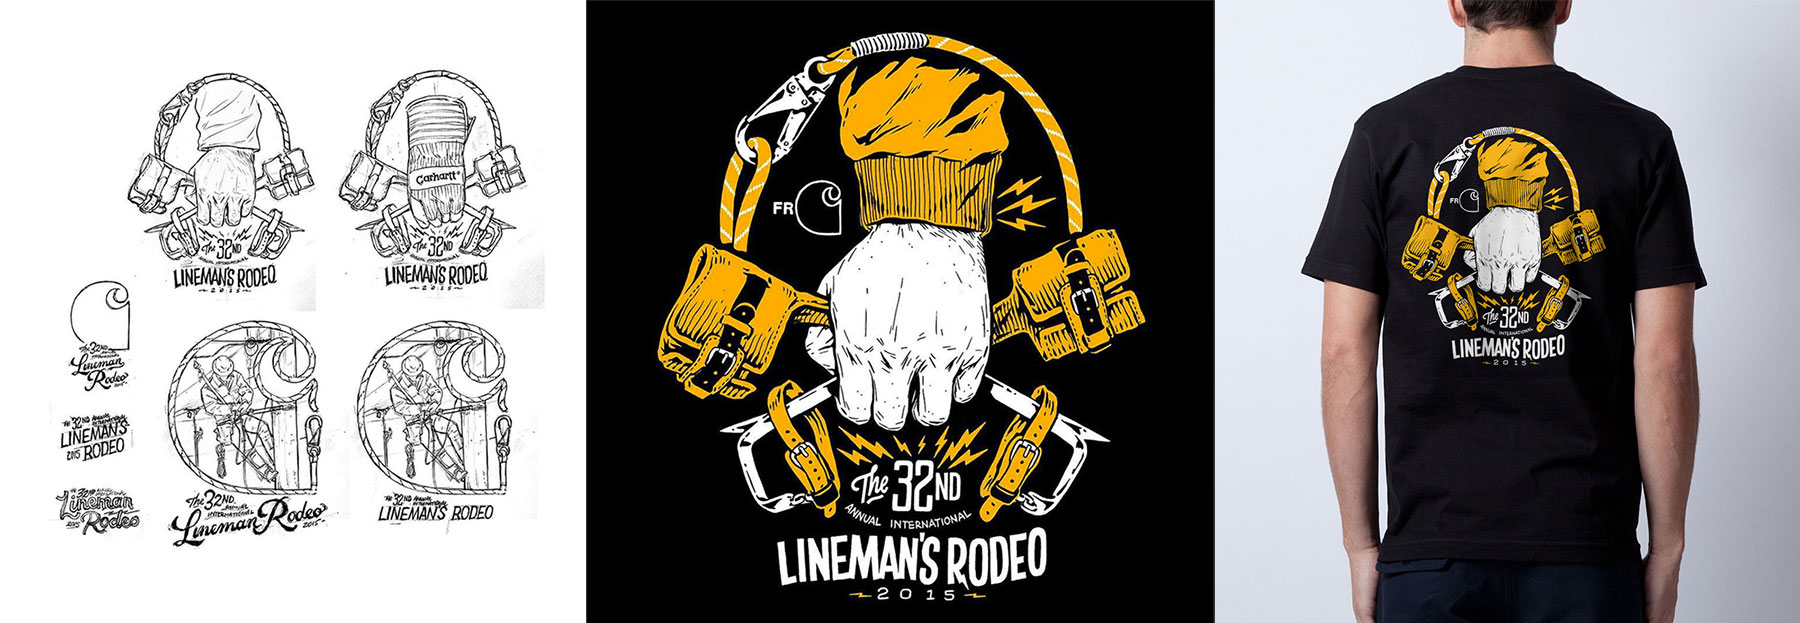 Carhartt Lineman's Rodeo Apparel Graphic